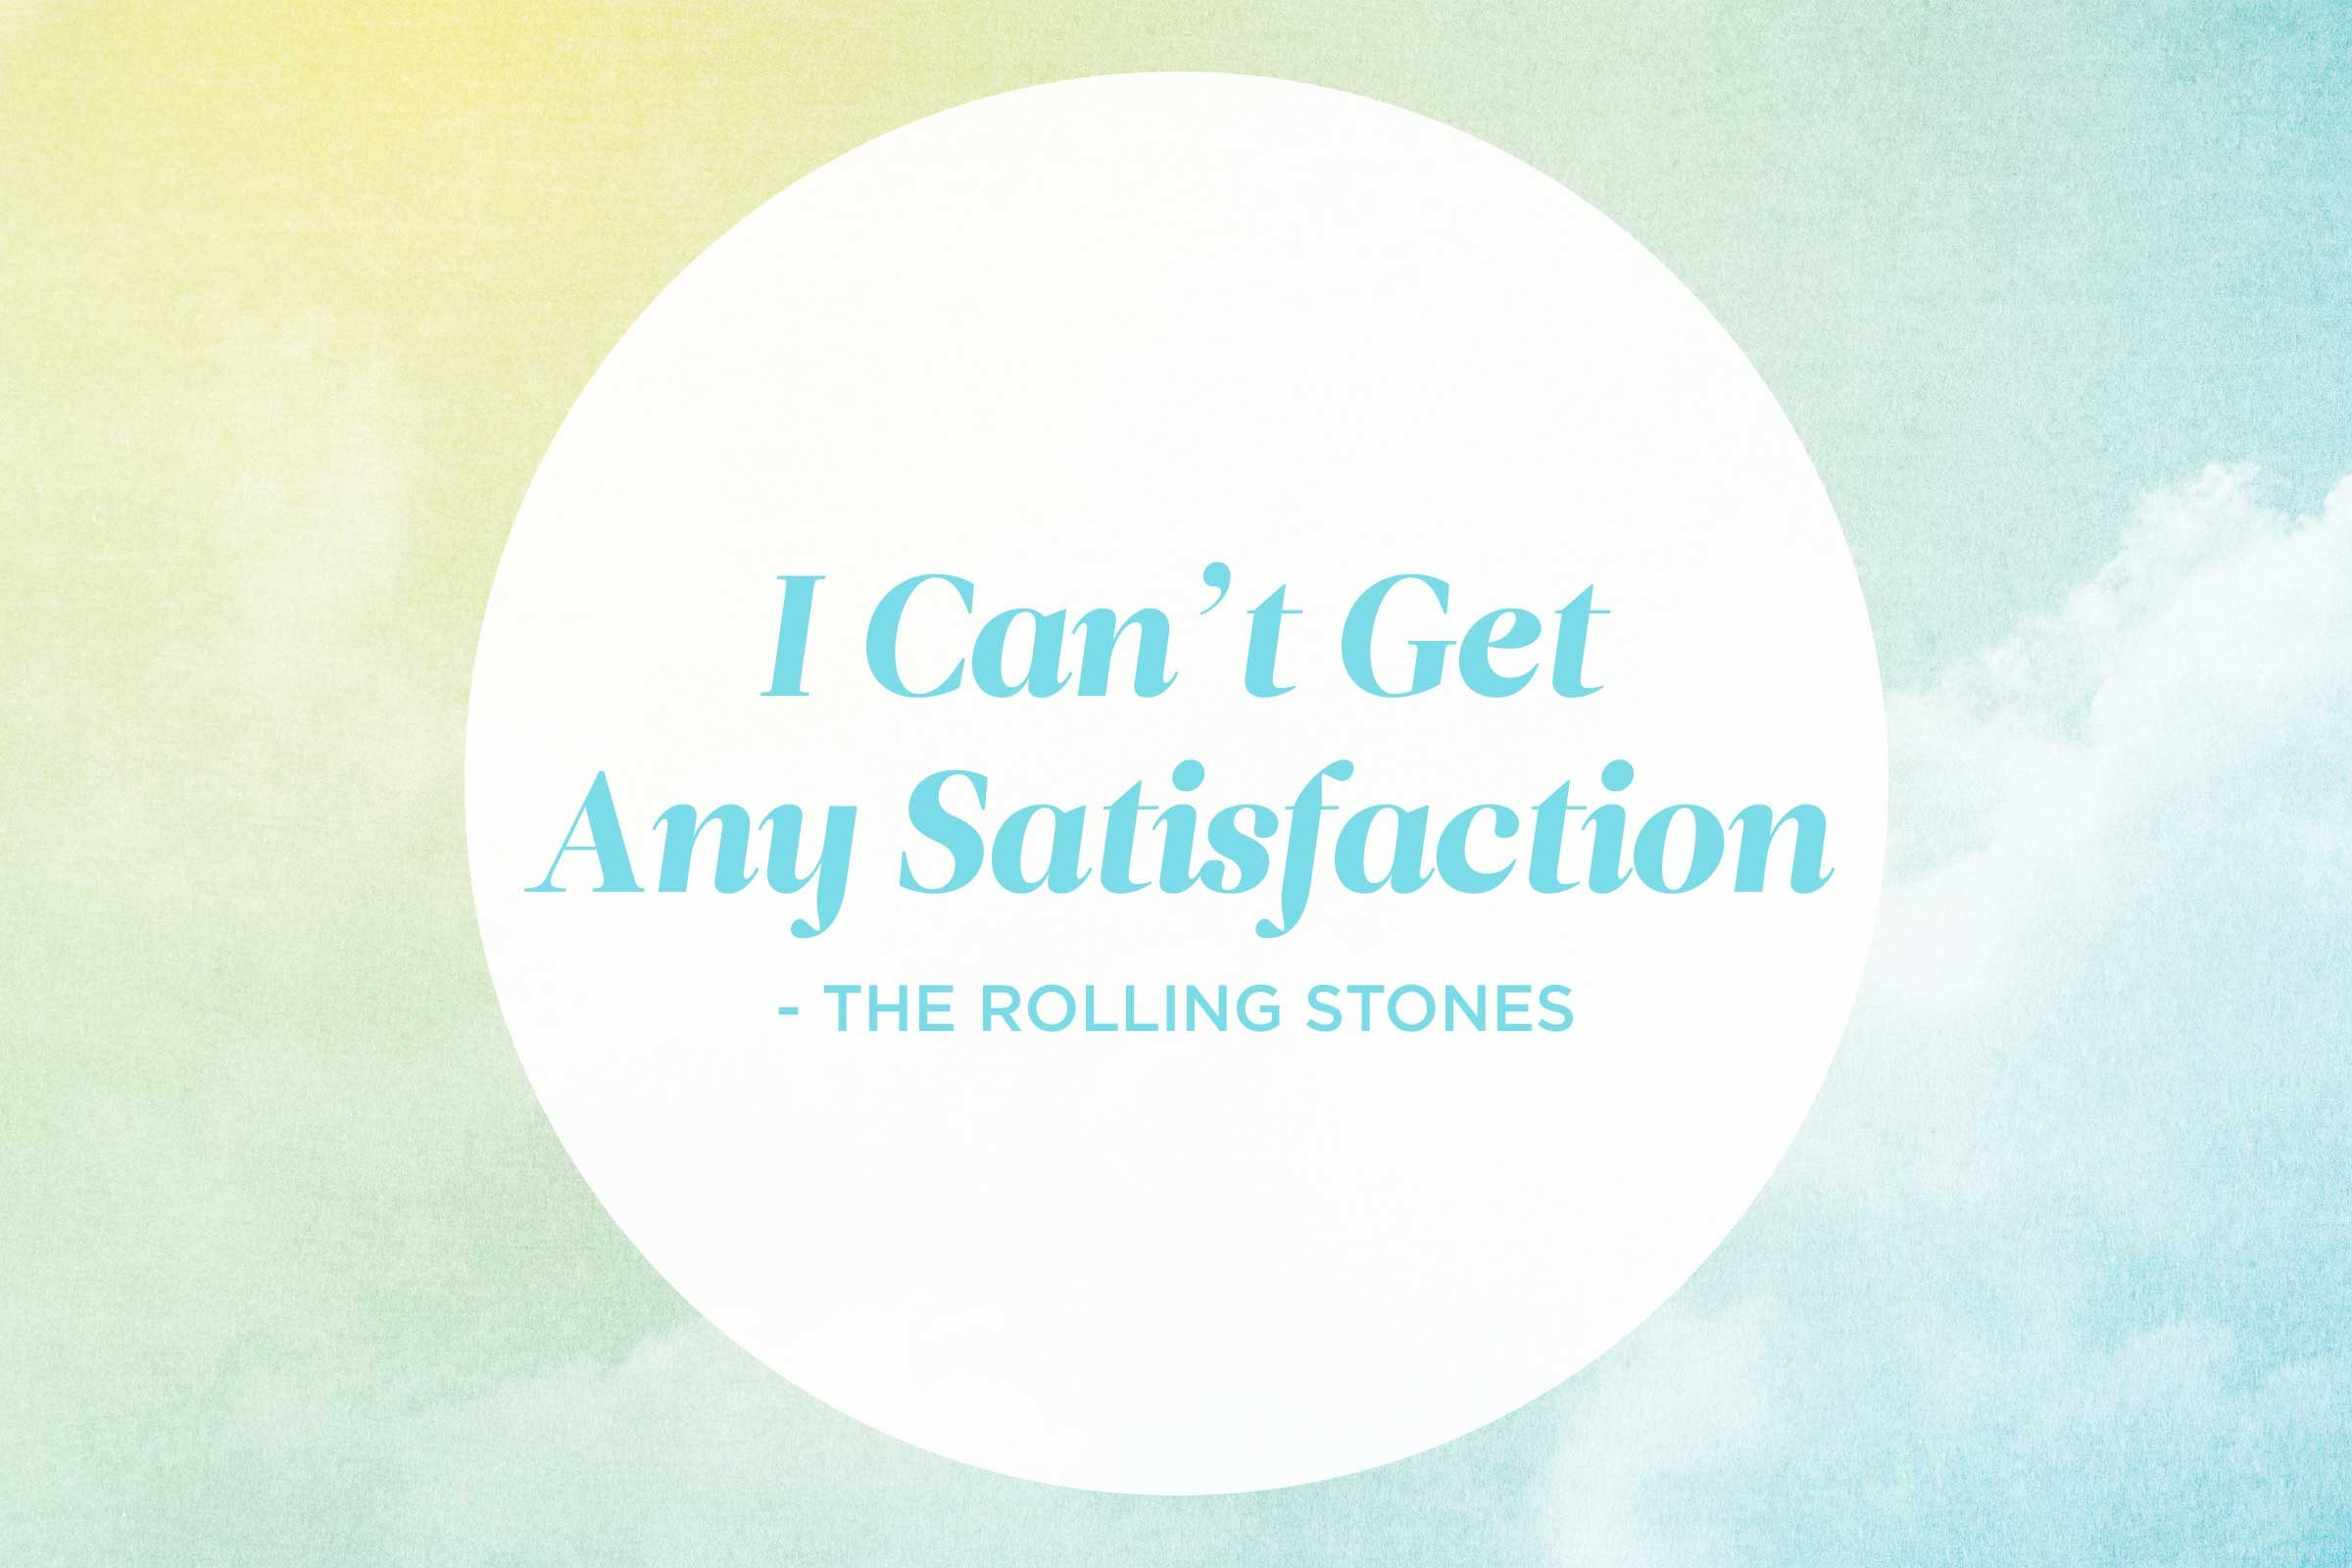 'I Can't Get No Satisfaction' by The Rolling Stones